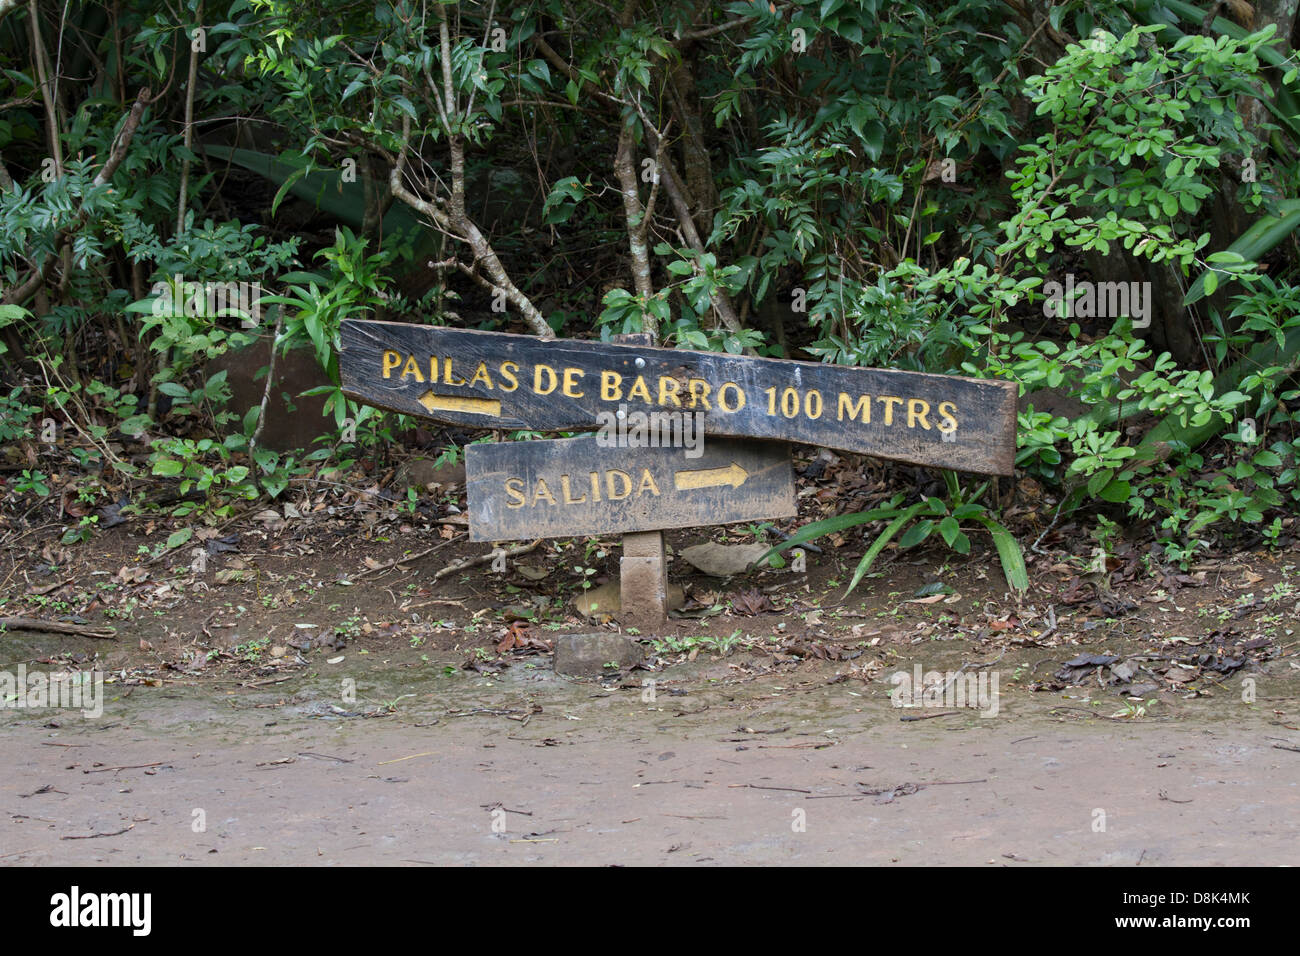 Mud Pots, Pilas de barro, Bubble, Sign, Rincon de la Vieja National Park, Costa Rica - Stock Image